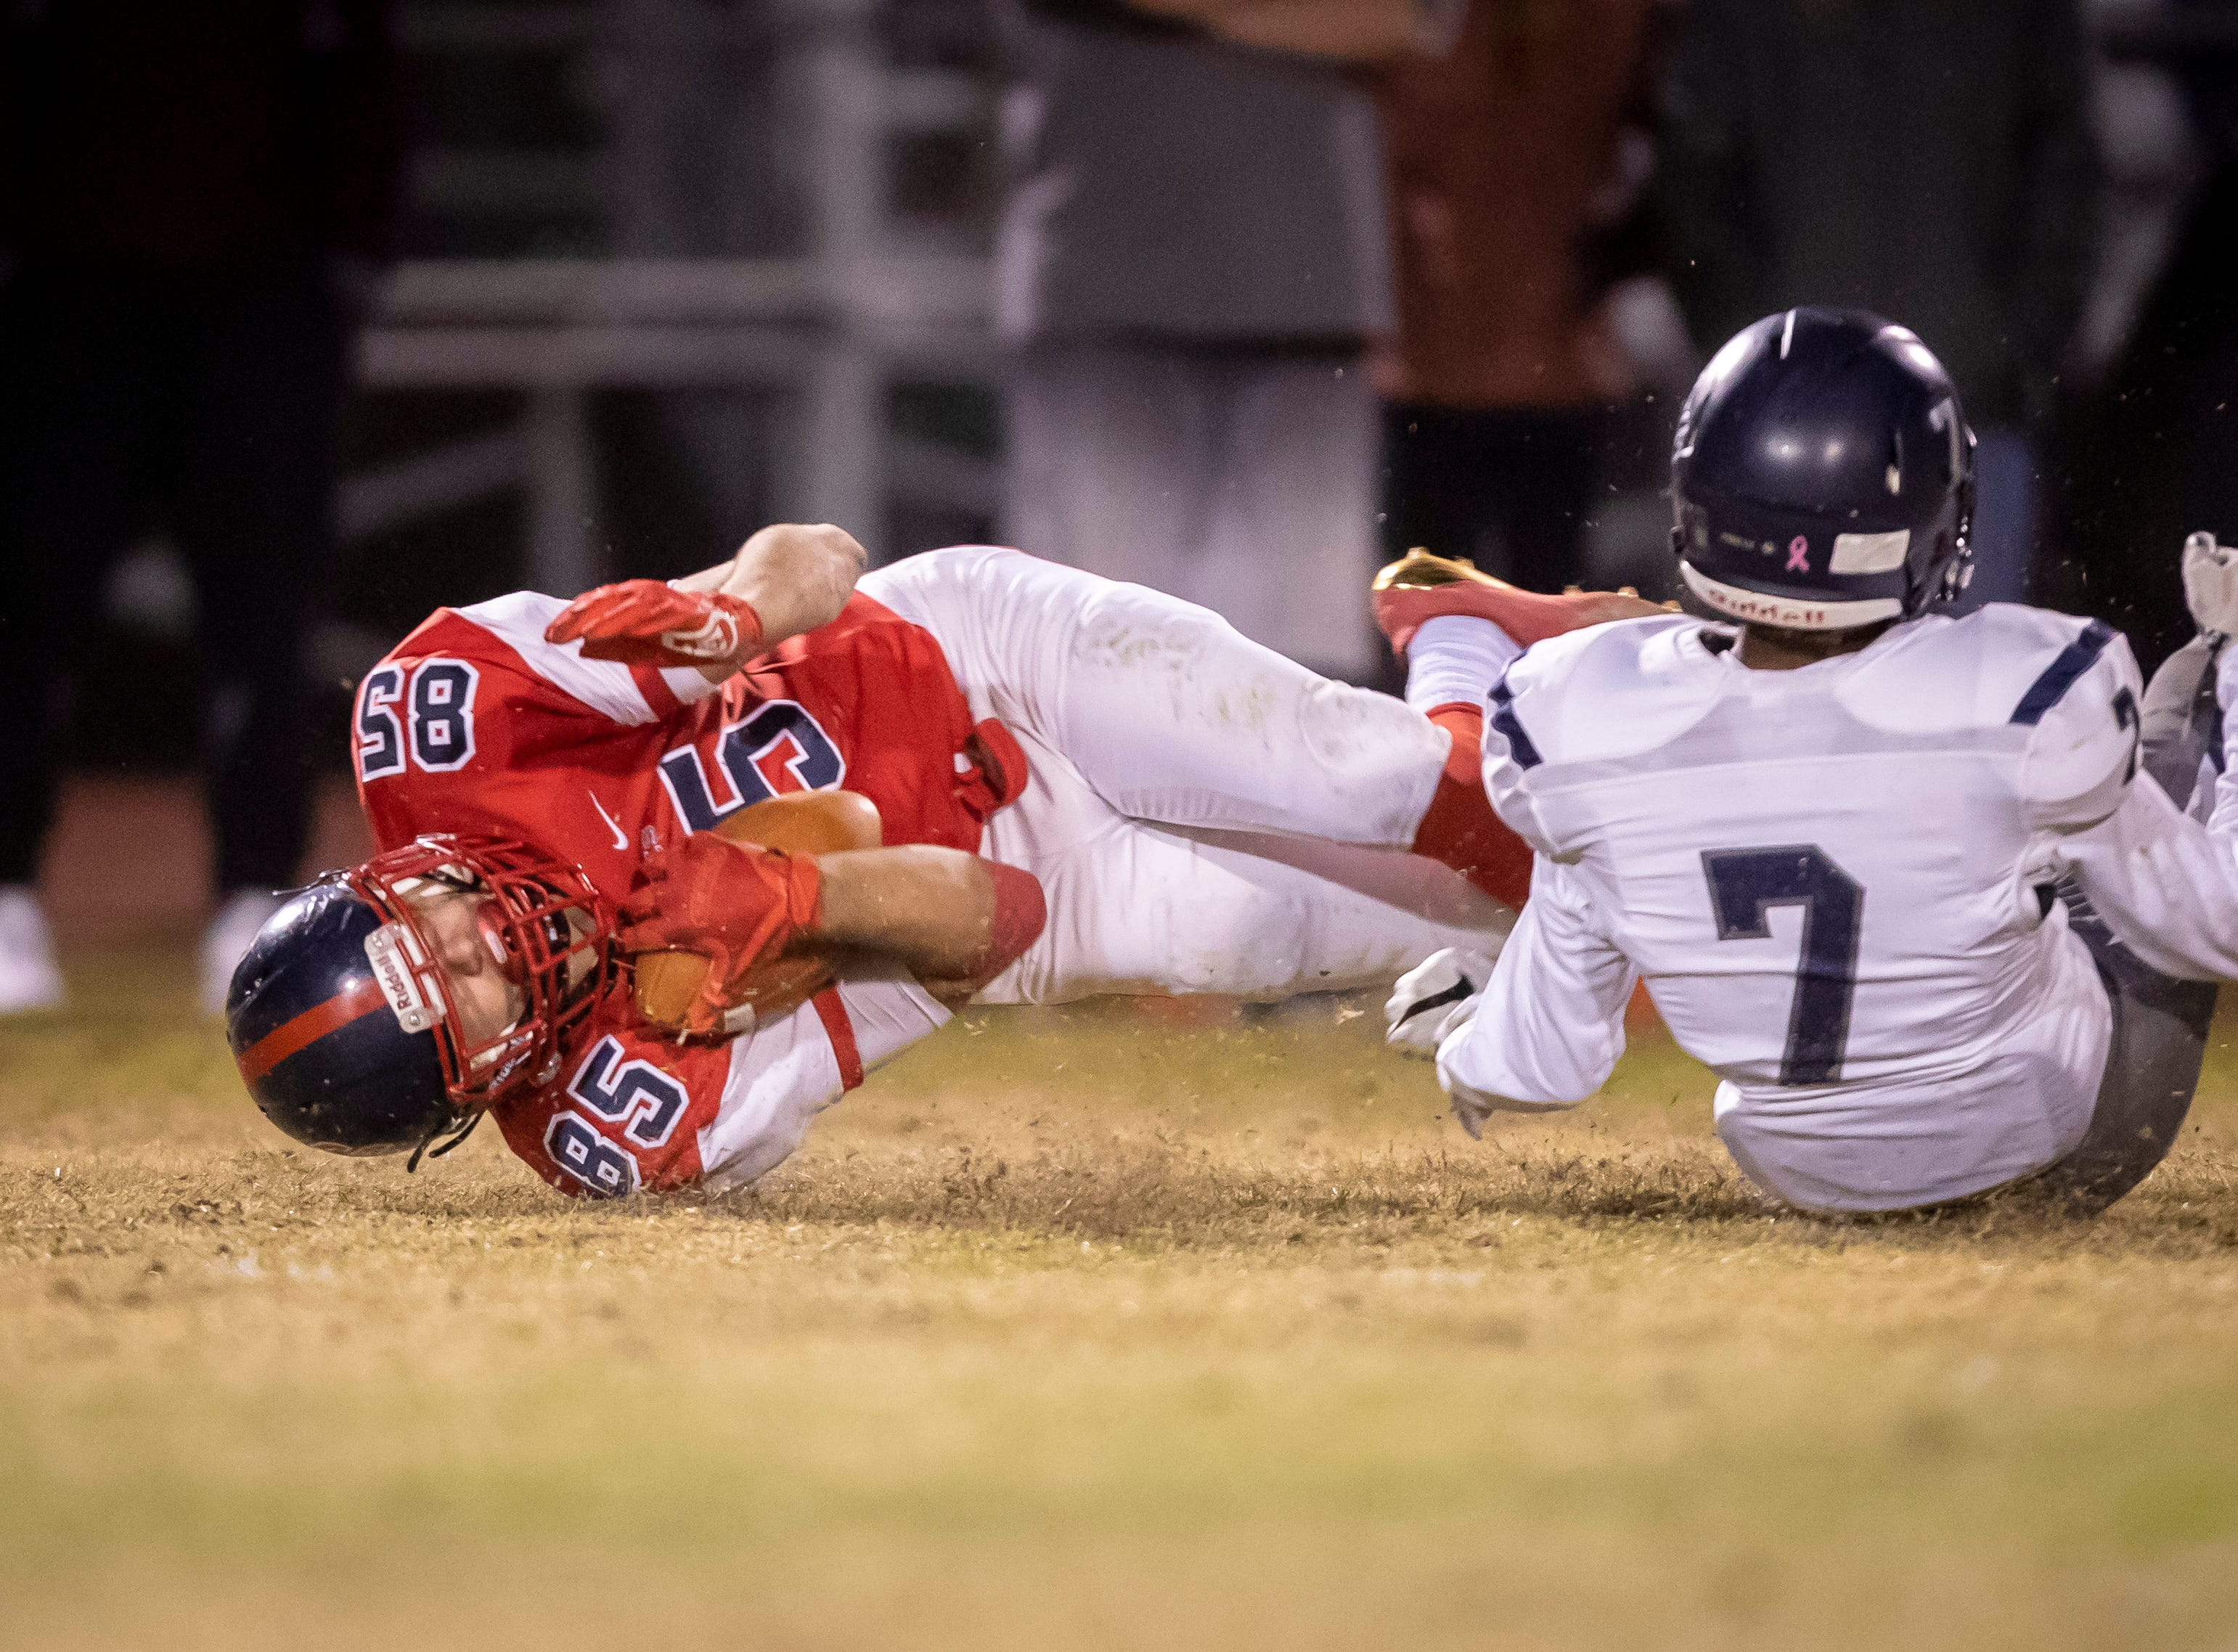 Runner Brad Young (85) of the Centennial Coyotes is brought down by junior free safety Elijah Taylor (7) of the Higley Knights in the 5A semi-finals at Willow Canyon High School on Friday, November 16, 2018 in Surprise, Arizona. #azhsfb